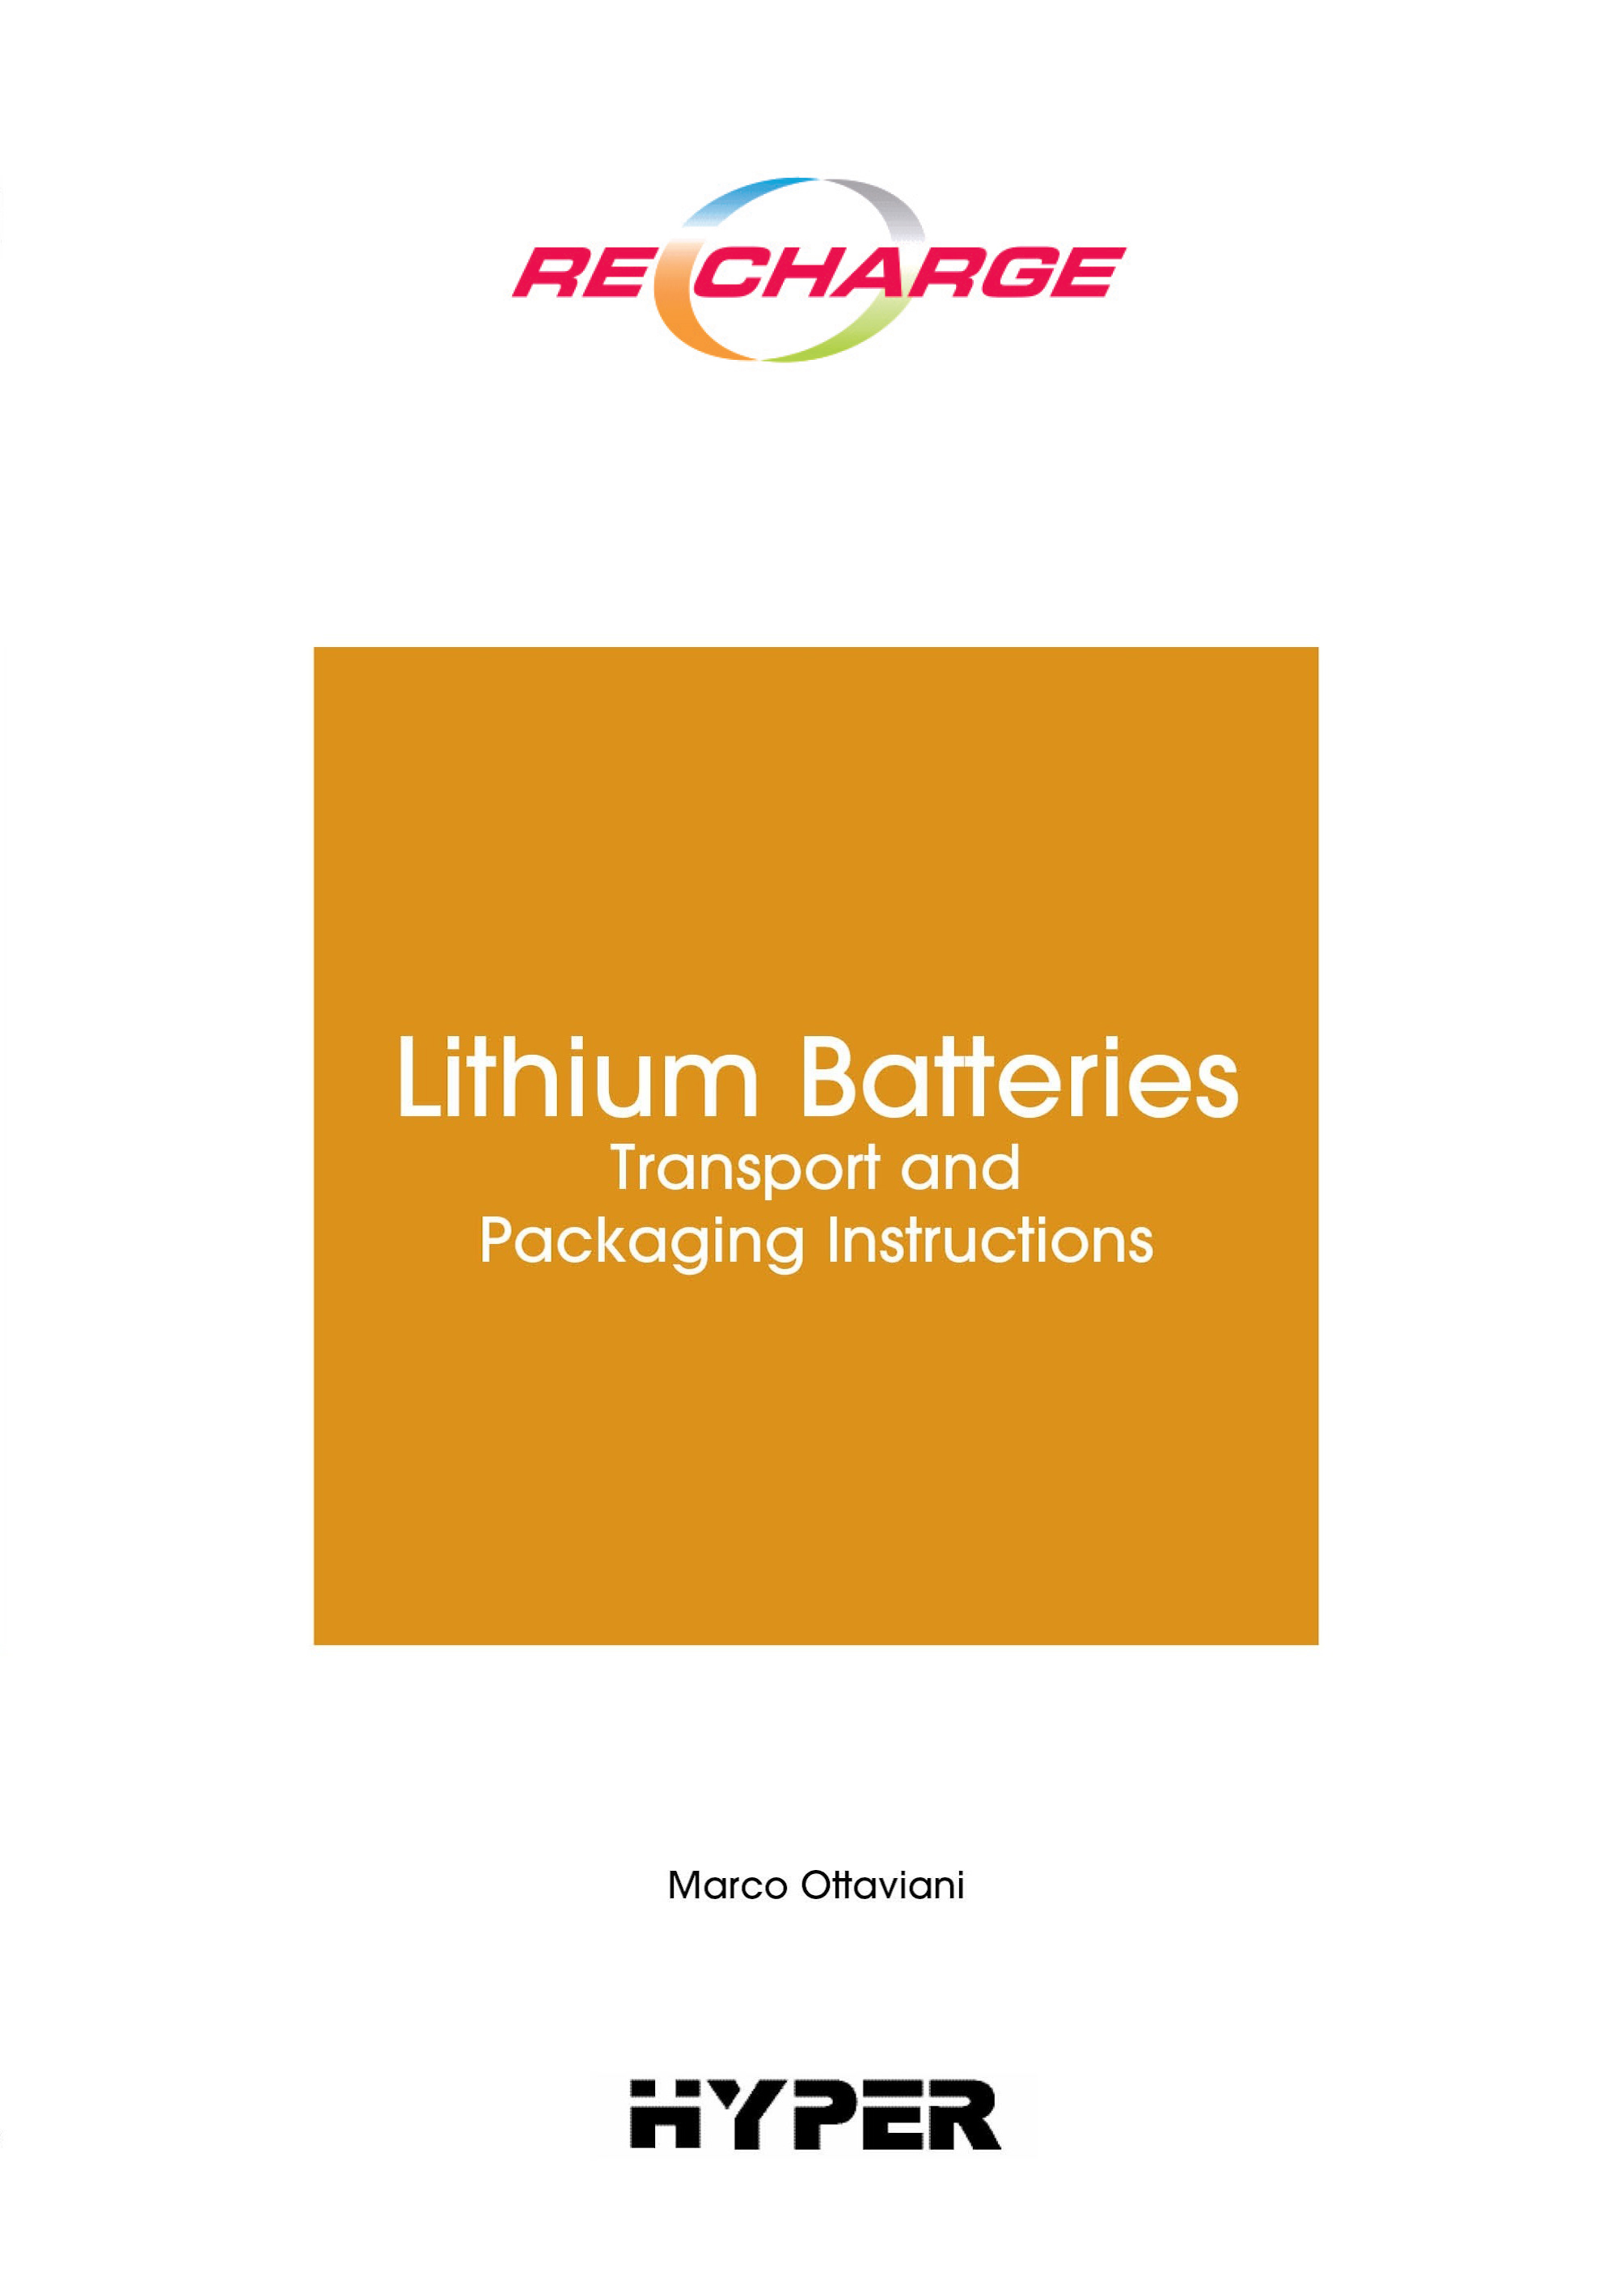 The Lithium Batteries